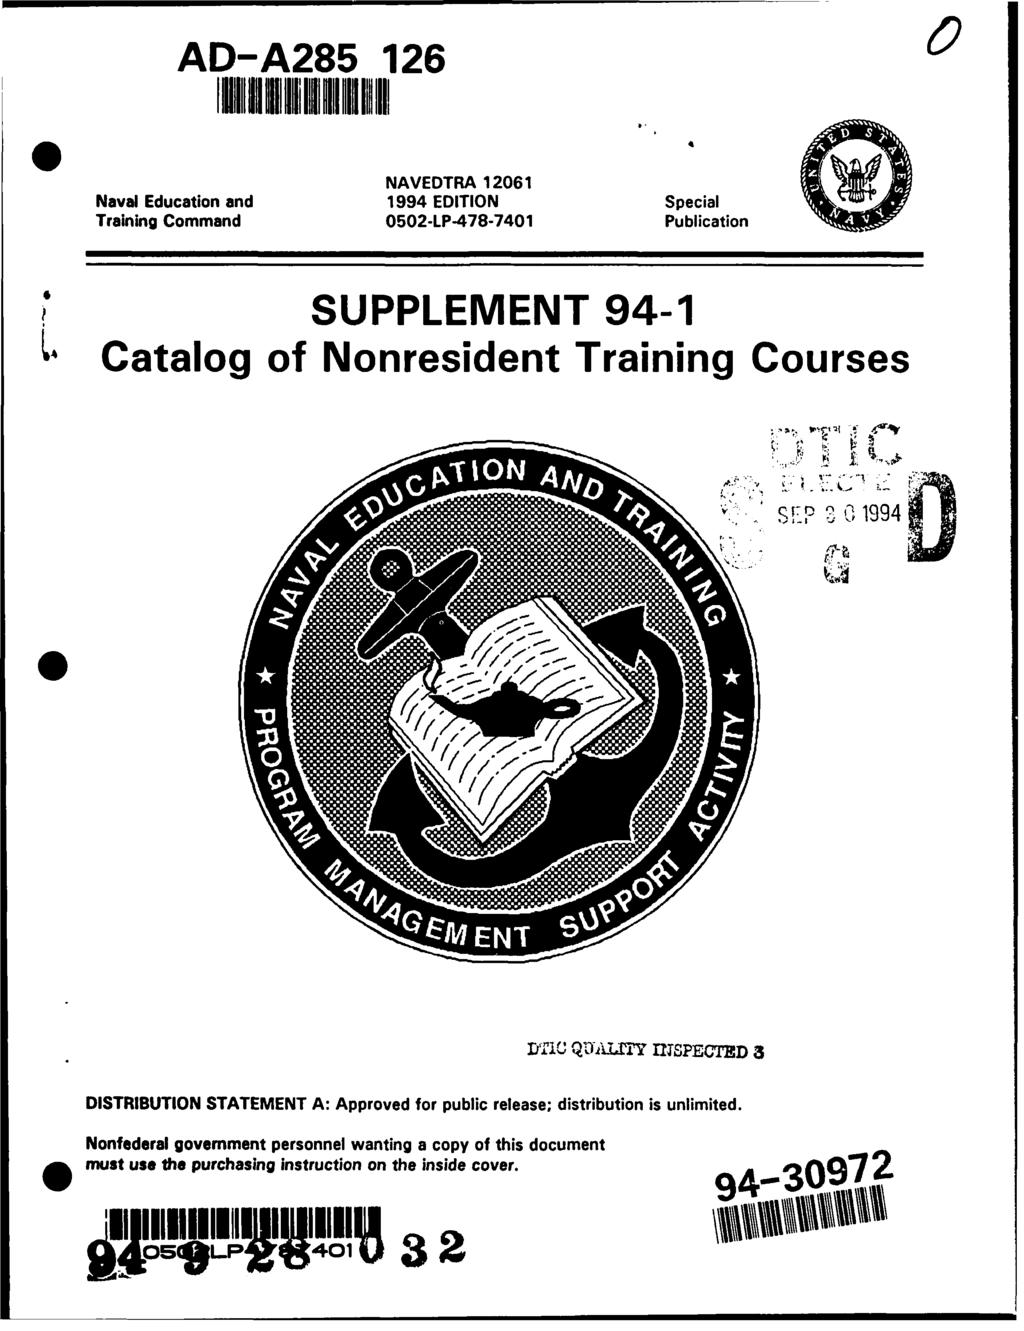 AD-A285 126 6 ElilEUNII IlHIII1I111II NAVEDTRA 12061 Naval Education and 1994 EDITION Special Training Command 0502-LP-478-7401 Publication 7 SUPPLEMENT 94-1 Catalog of Nonresident Training Courses.V.. 1,-, P 1994 DfTIC QIL)A1TY 171SPECTED 3 DISTRIBUTION STATEMENT A: Approved for public release; distribution is unlimited.